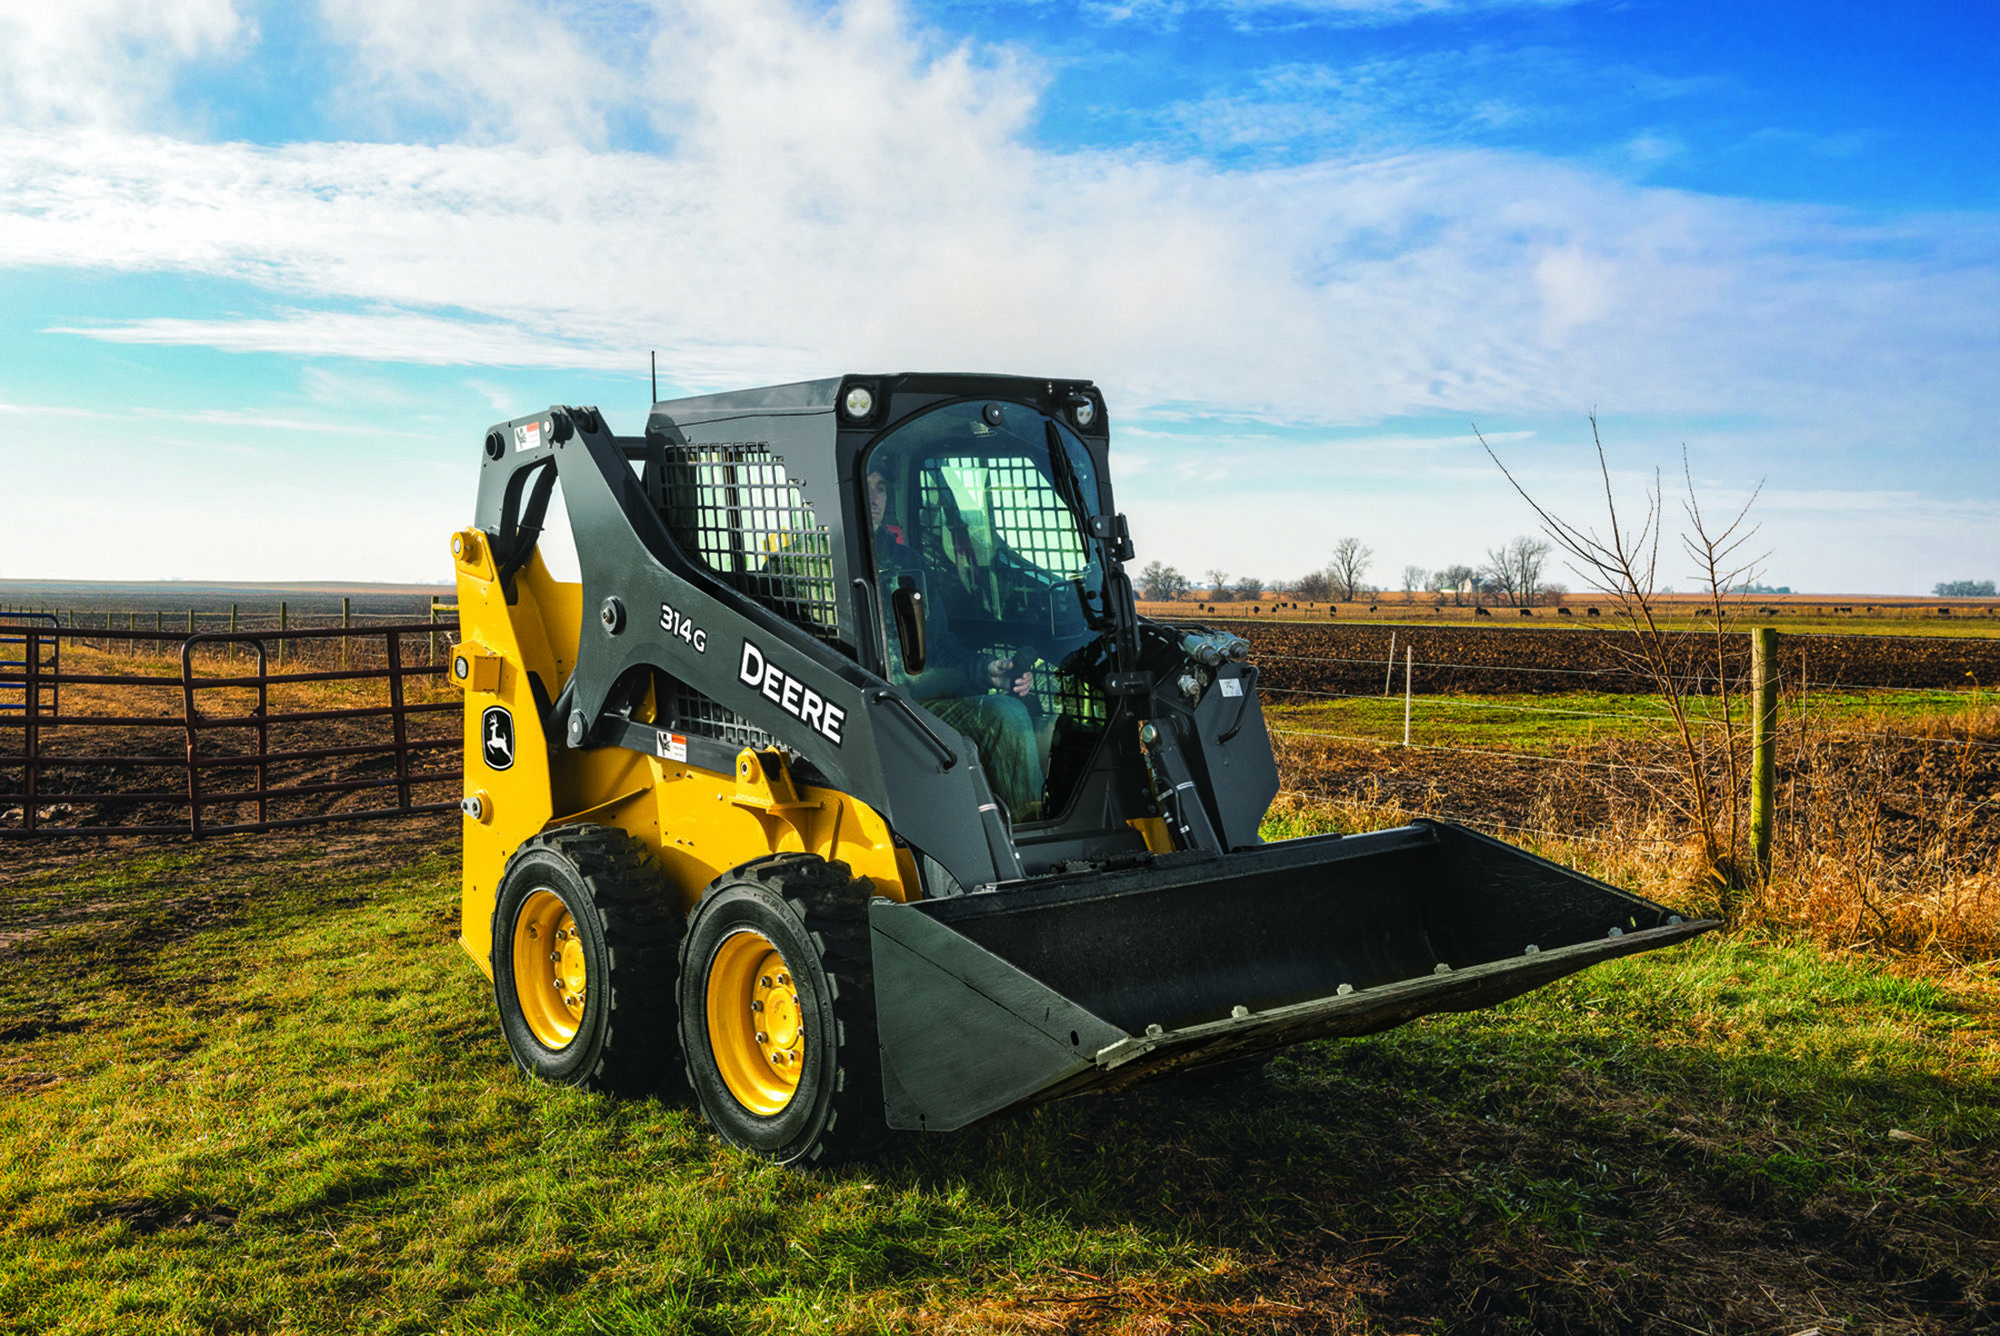 New John Deere Small-Frame Skid Steer Loaders and Compact